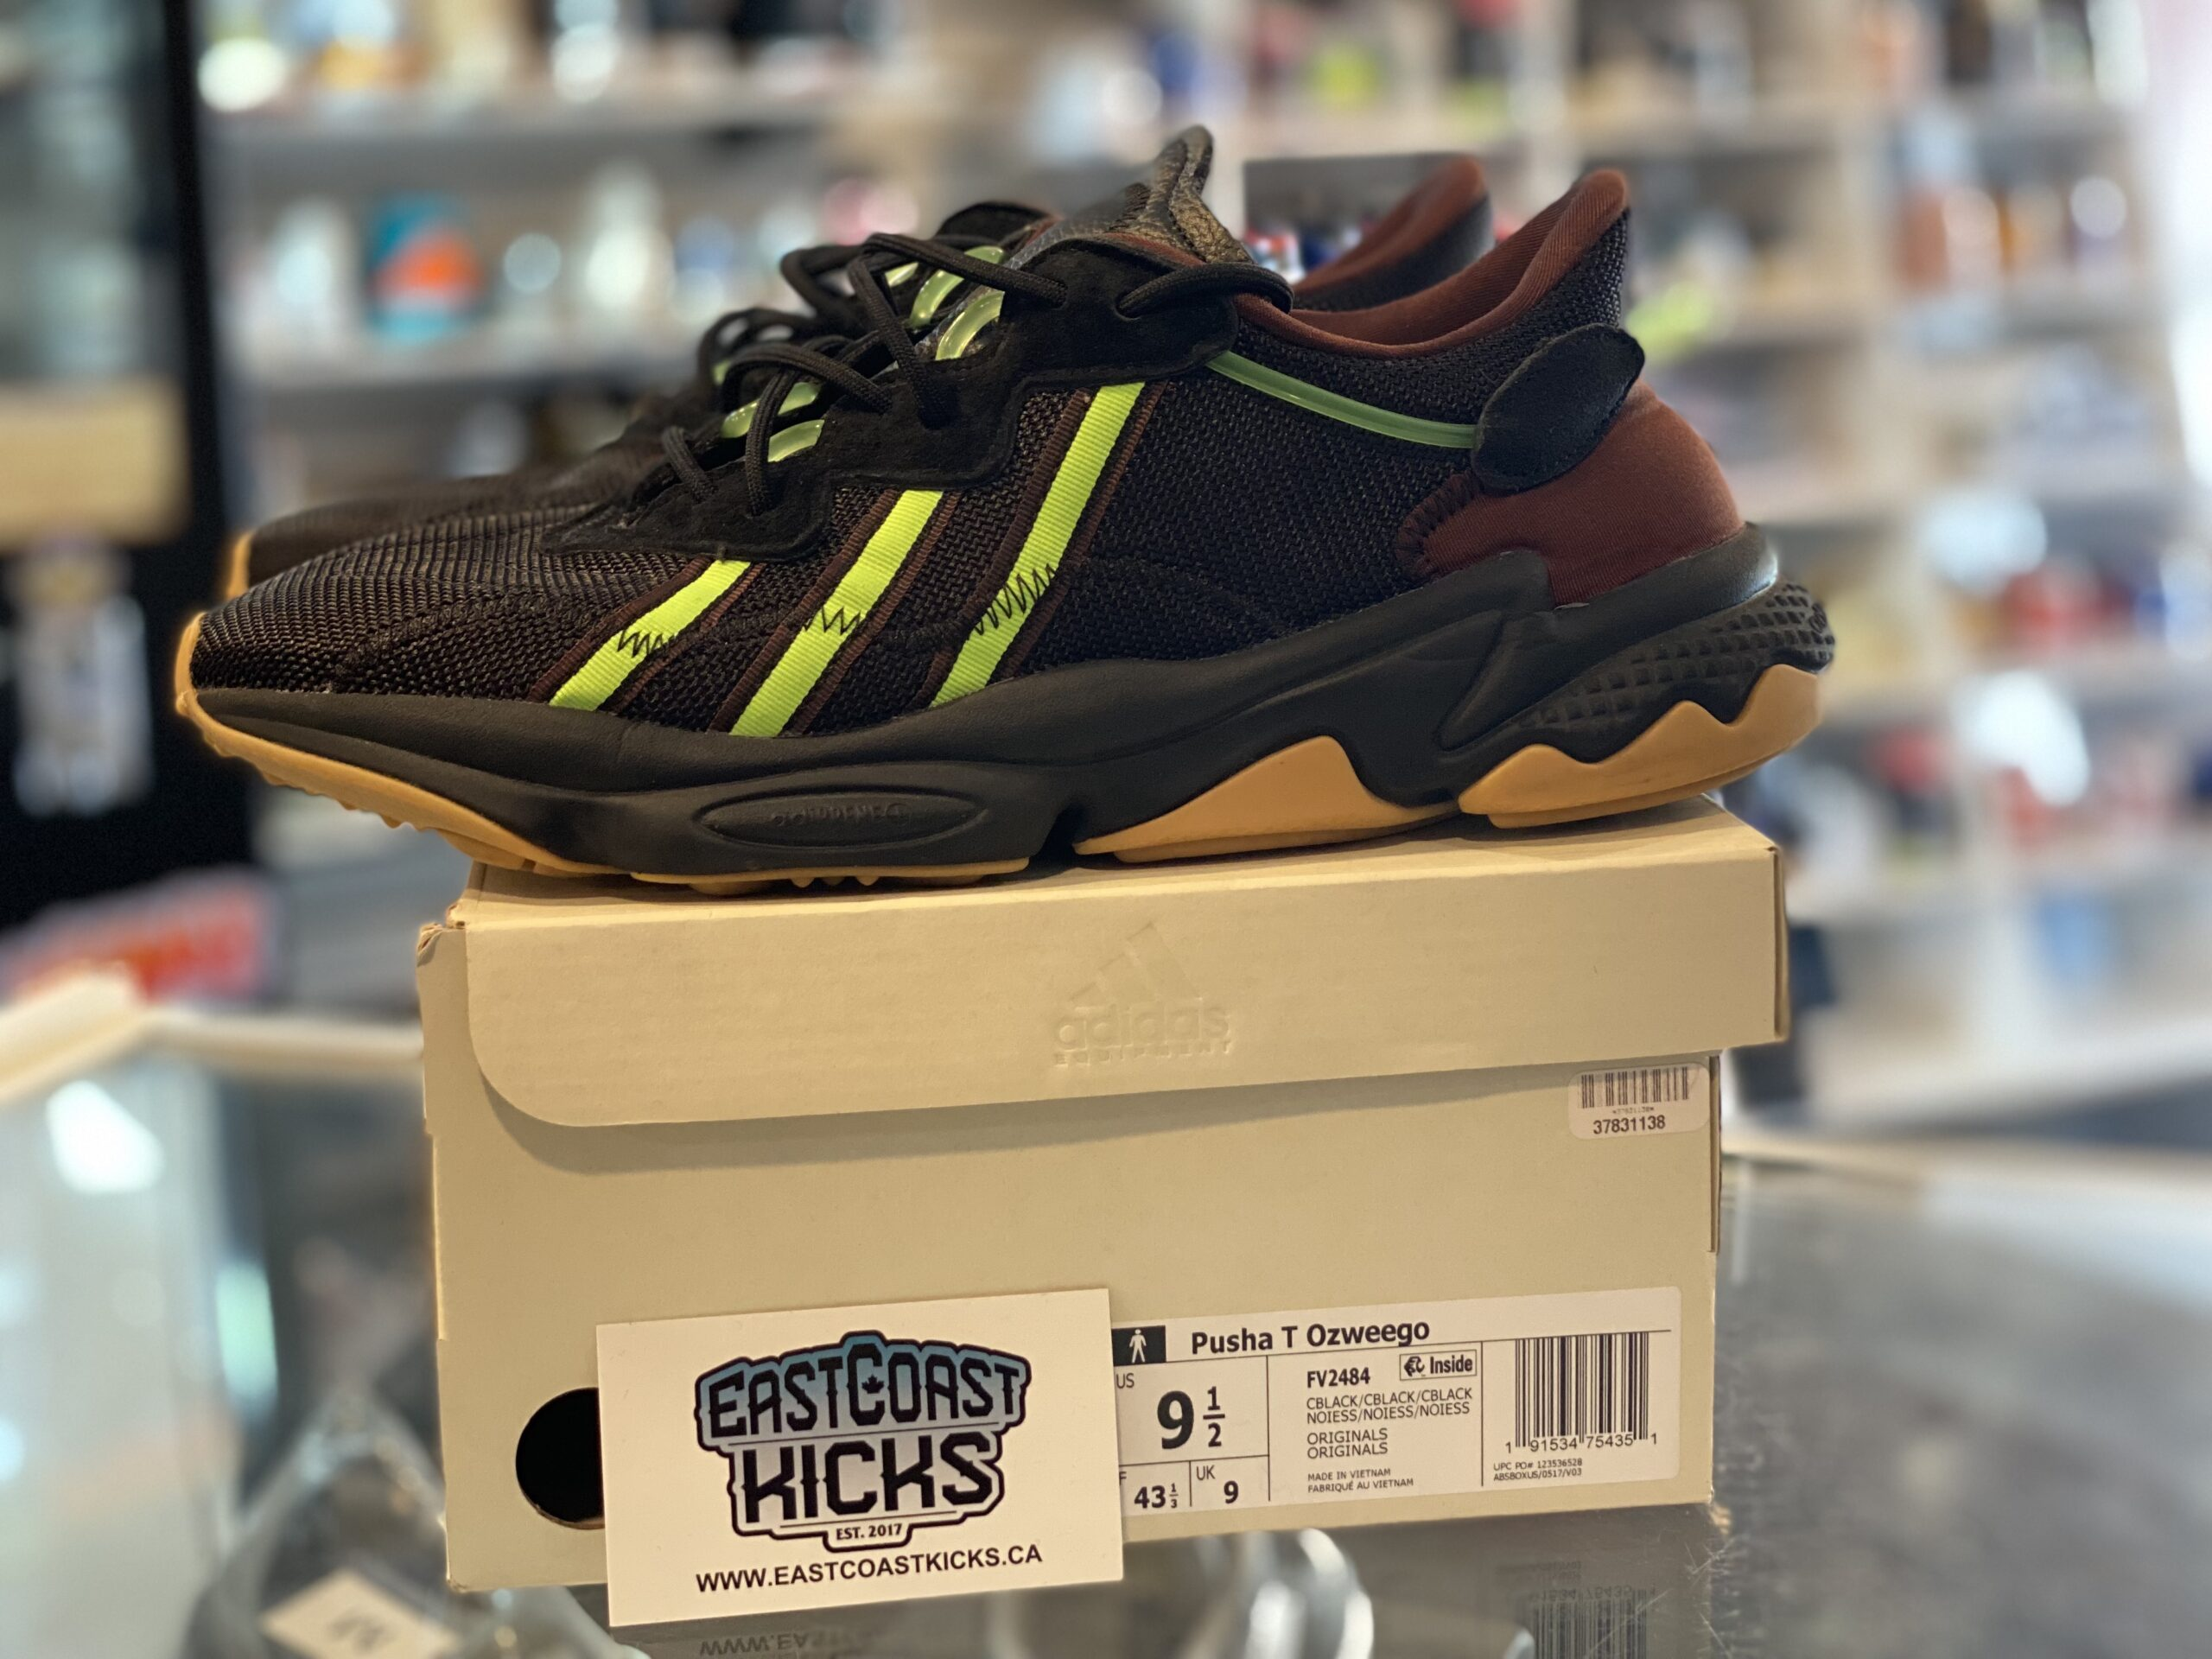 Preowned Adidas Ozweego Pusha T Mystery Brown Size 9.5